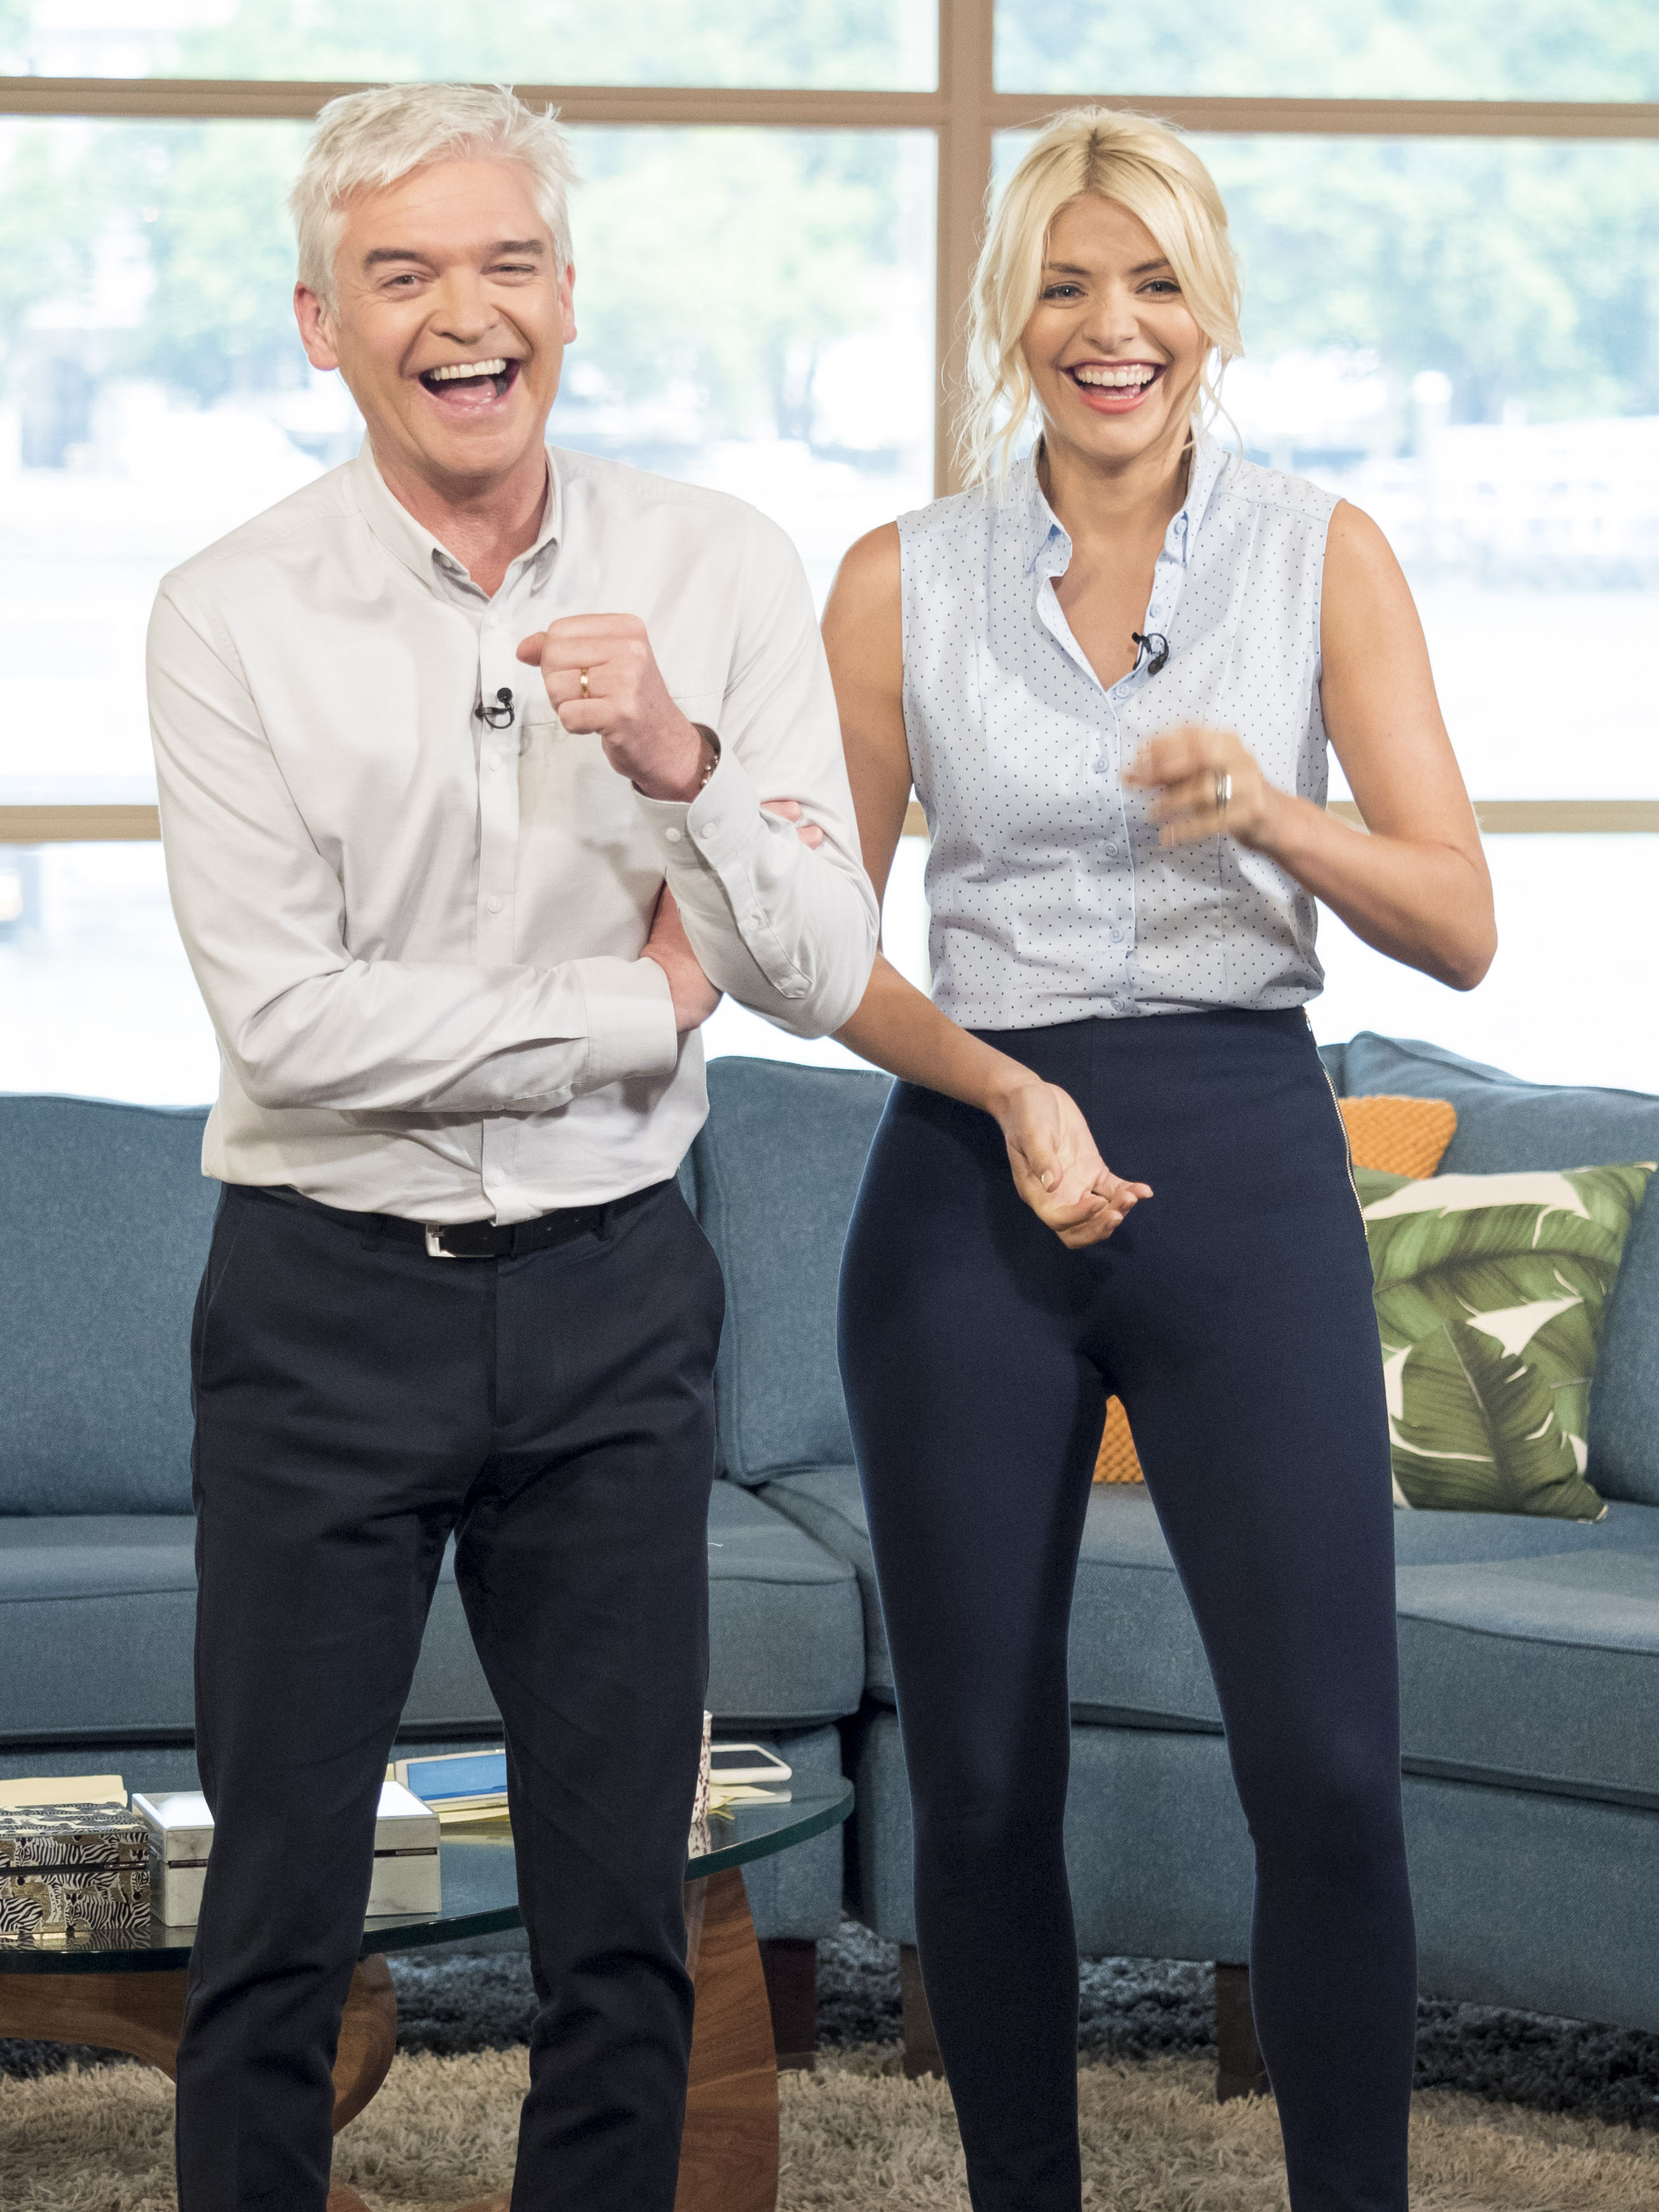 Inside This Morning's Holly Willoughby and Phillip Schofield's wild evening on holiday